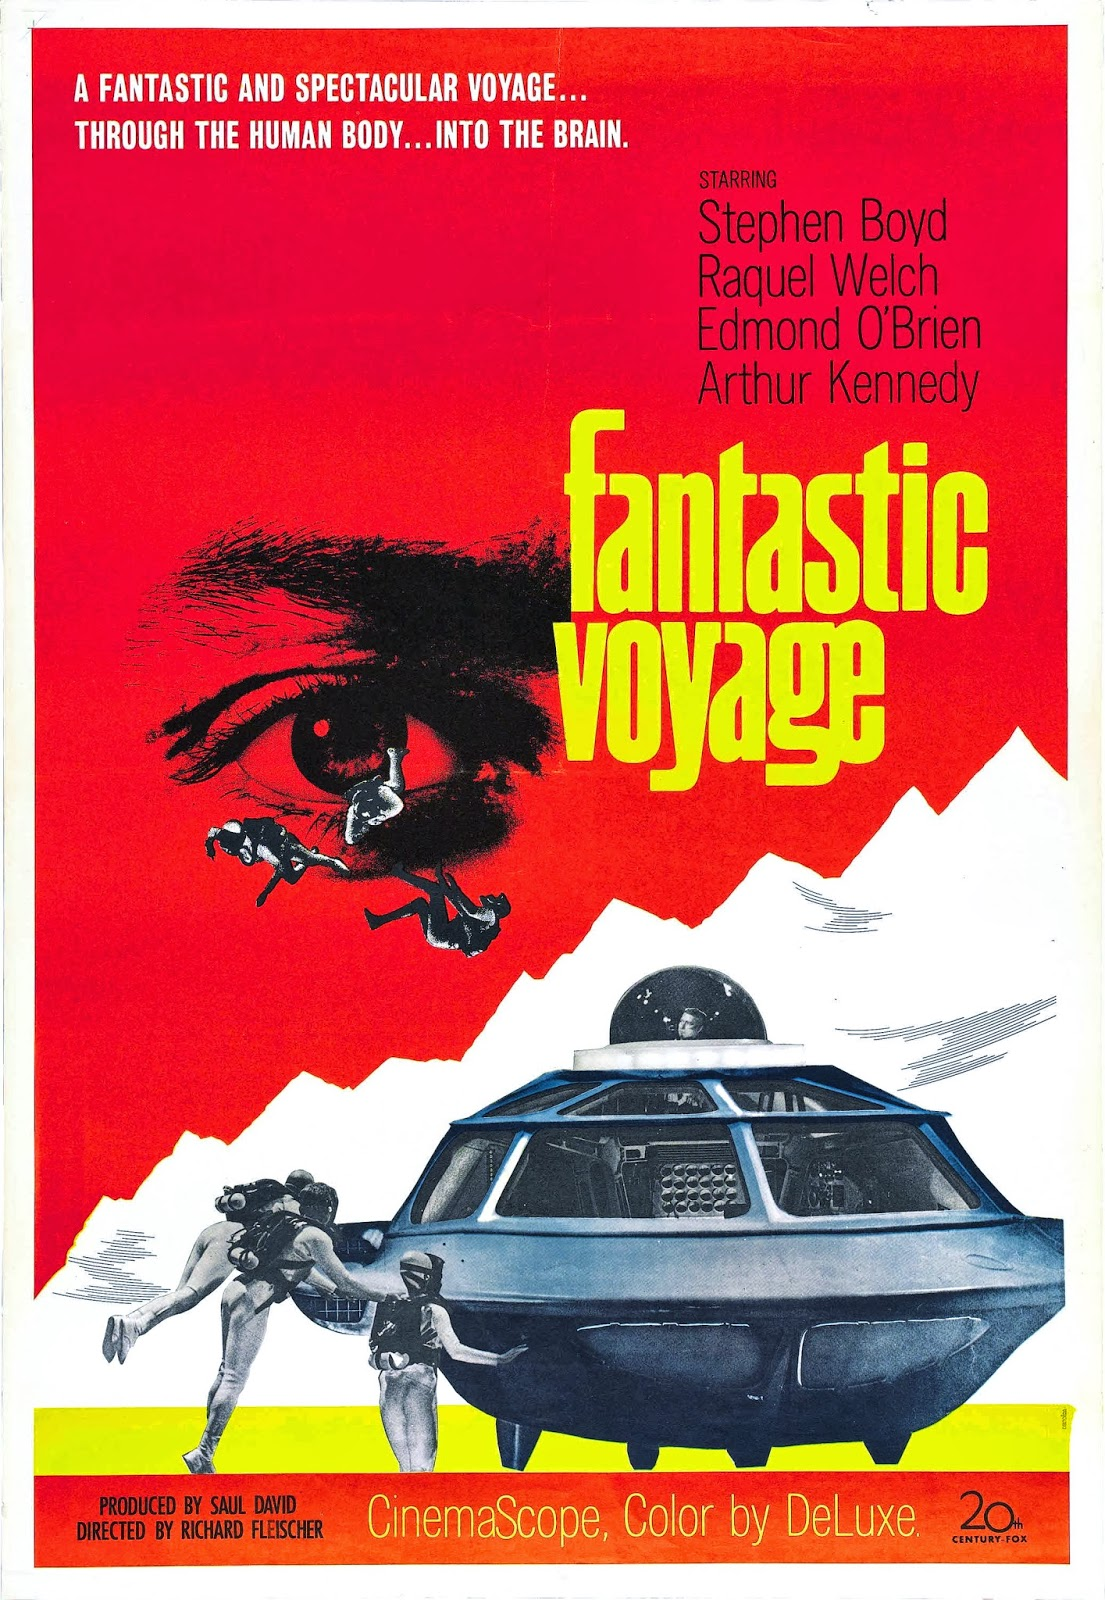 fantastic voyage part 1 Fantastic voyage film poster, 1966 for $245000 (4/28/2018) shop with global insured delivery at pamono call us at 1-800-601-2340 share about this piece vintage design tom beauvais designed this 1960s poster for the sci- fi film fantastic voyage the poster measures 32 x 42cm including the linen backing.